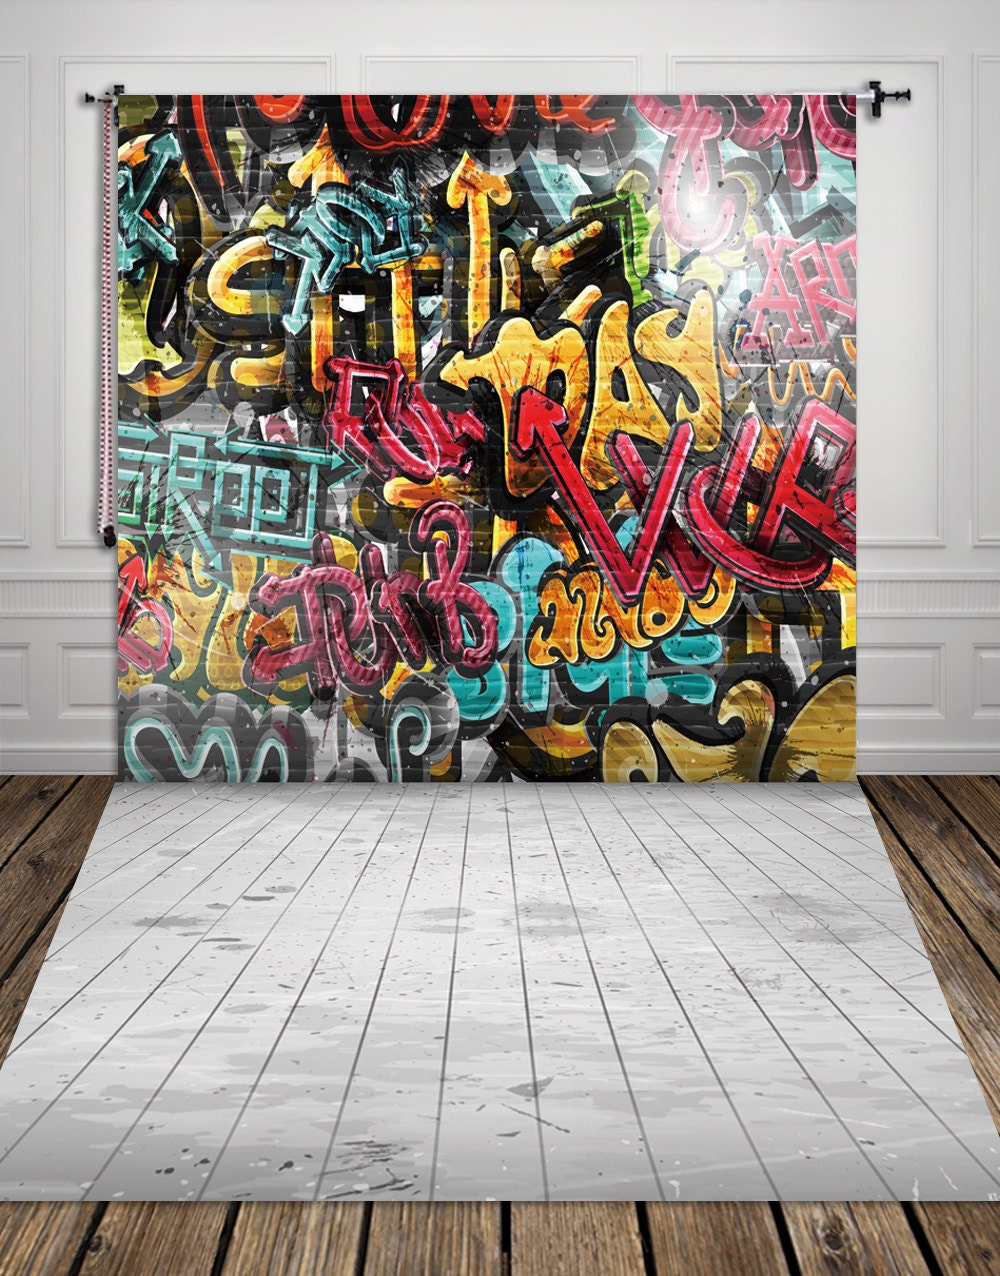 Graffiti wall vinyl - Graffiti Wall Backdrop Photography Vinyl Background Photo Prop Stage Photo Backdrop For Adults Party Show